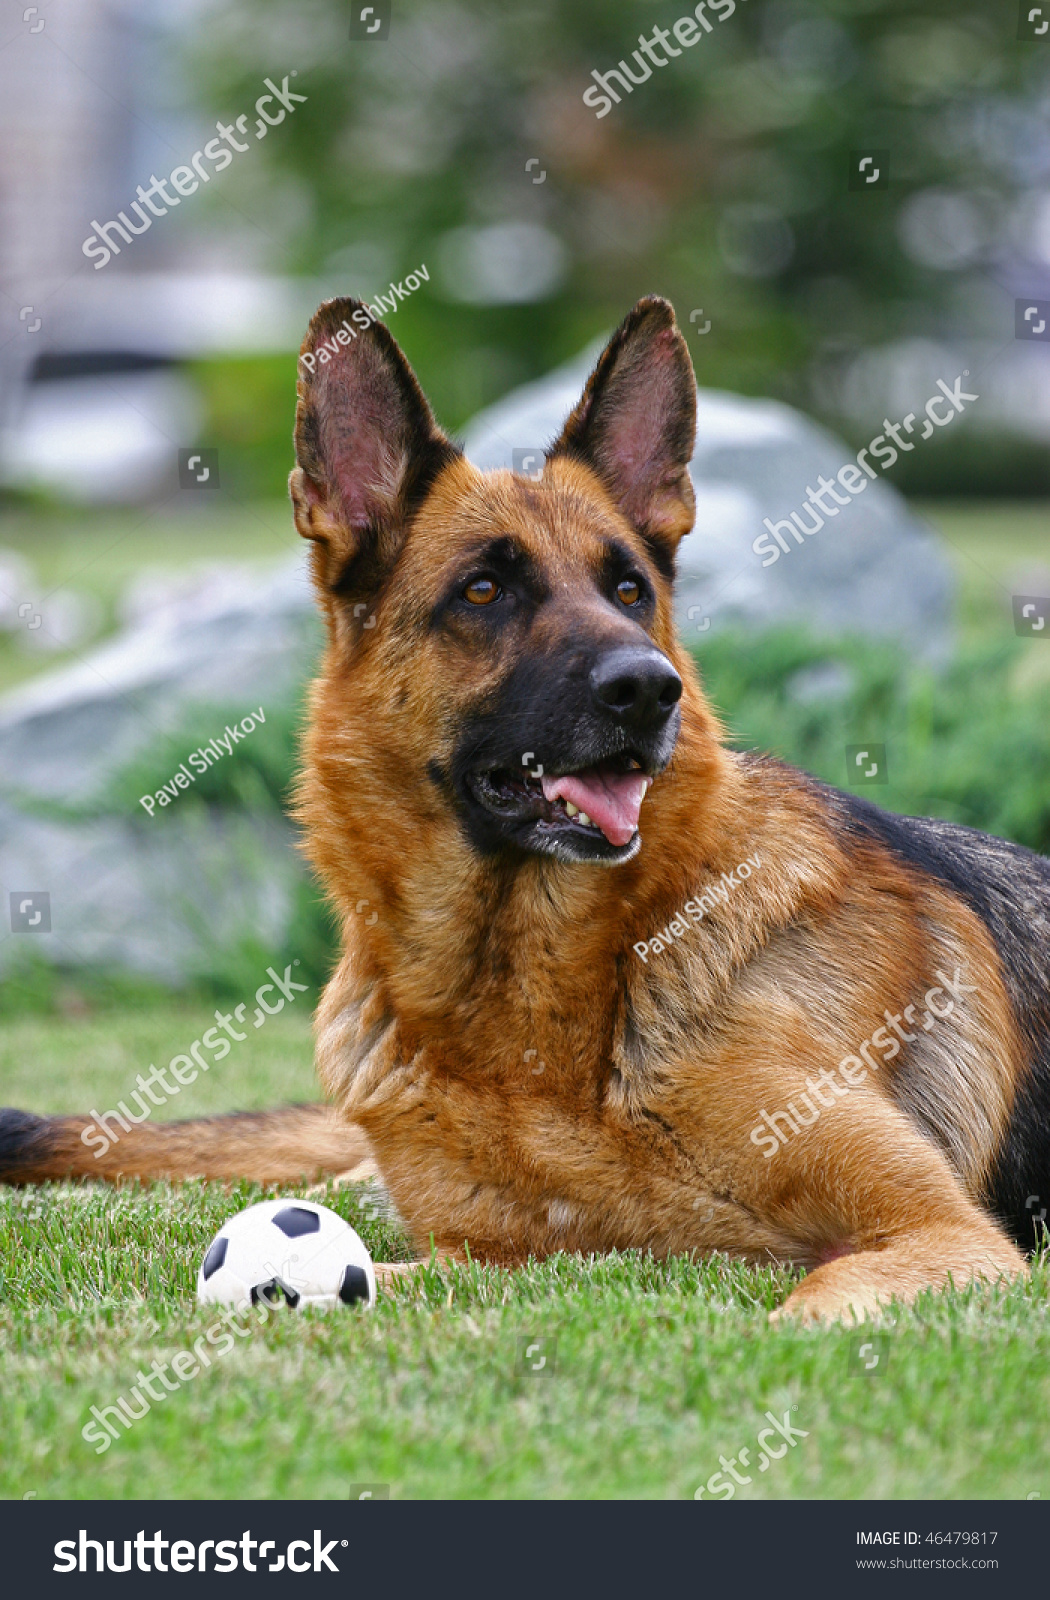 The Dog Of Breed A German Shepherd Lies With A Small ...